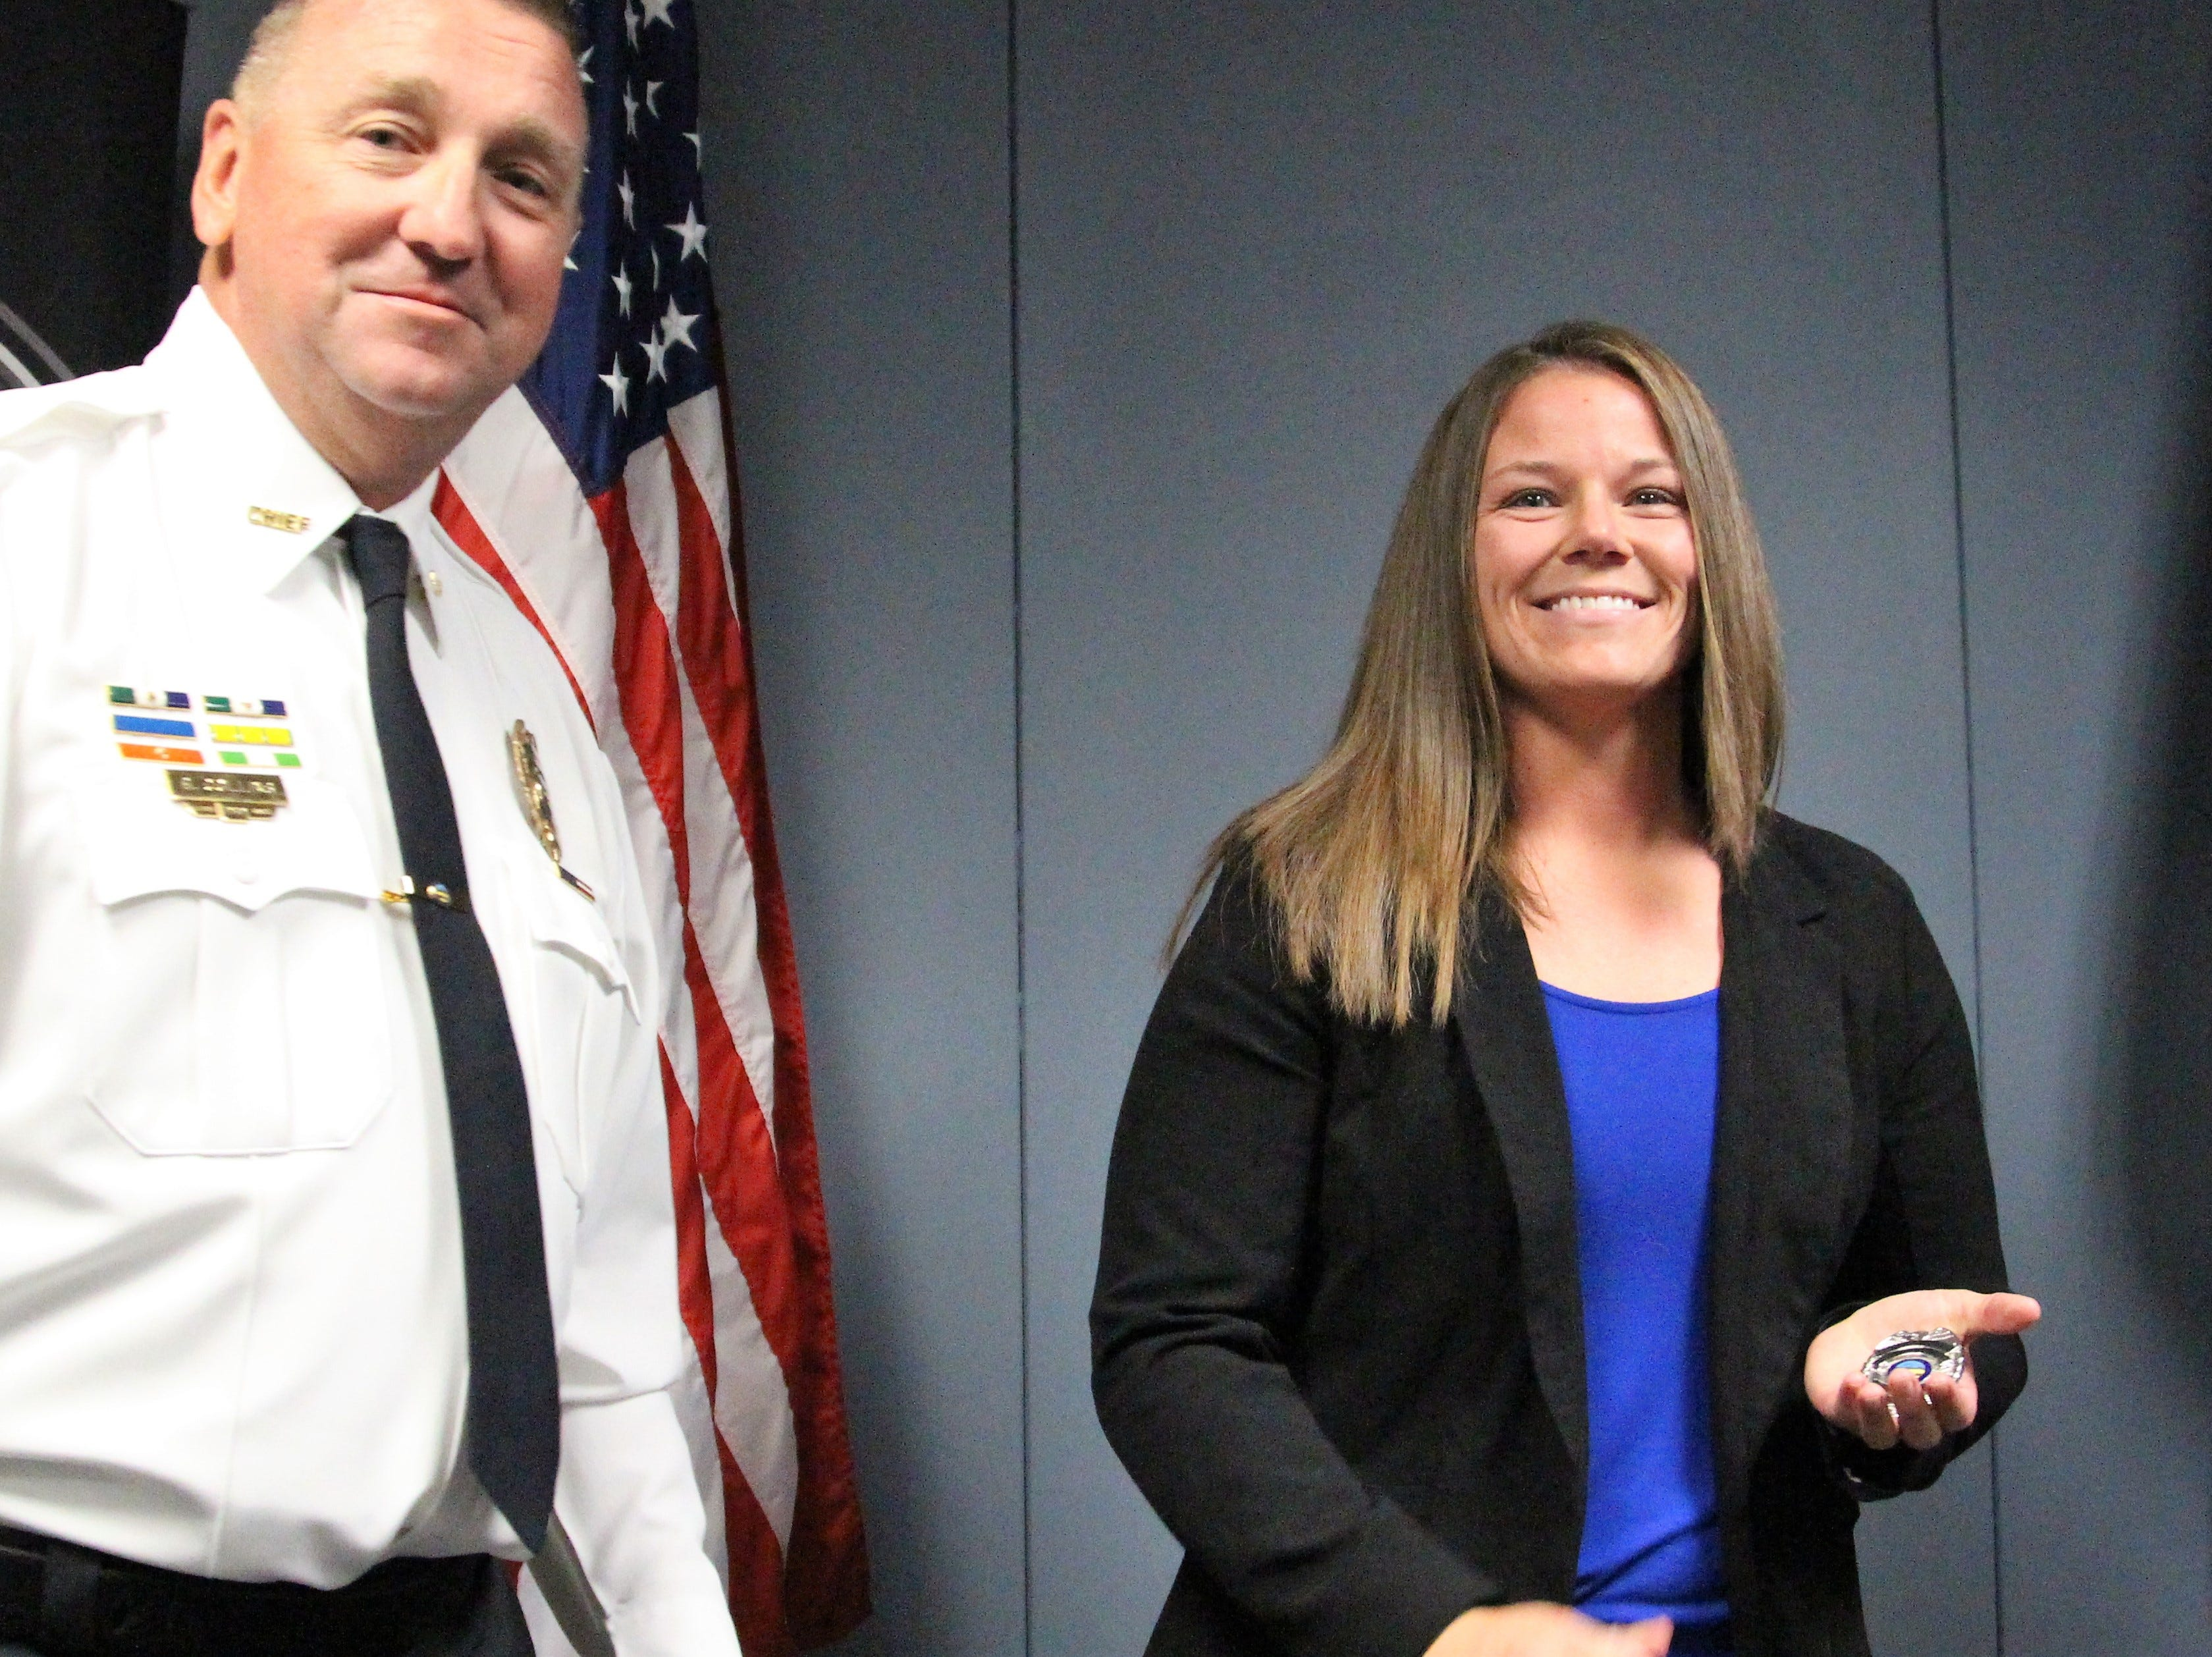 Dena Benroth holds her new badge after being issued the oath of office by Mayor Scott Schertzer on Monday.